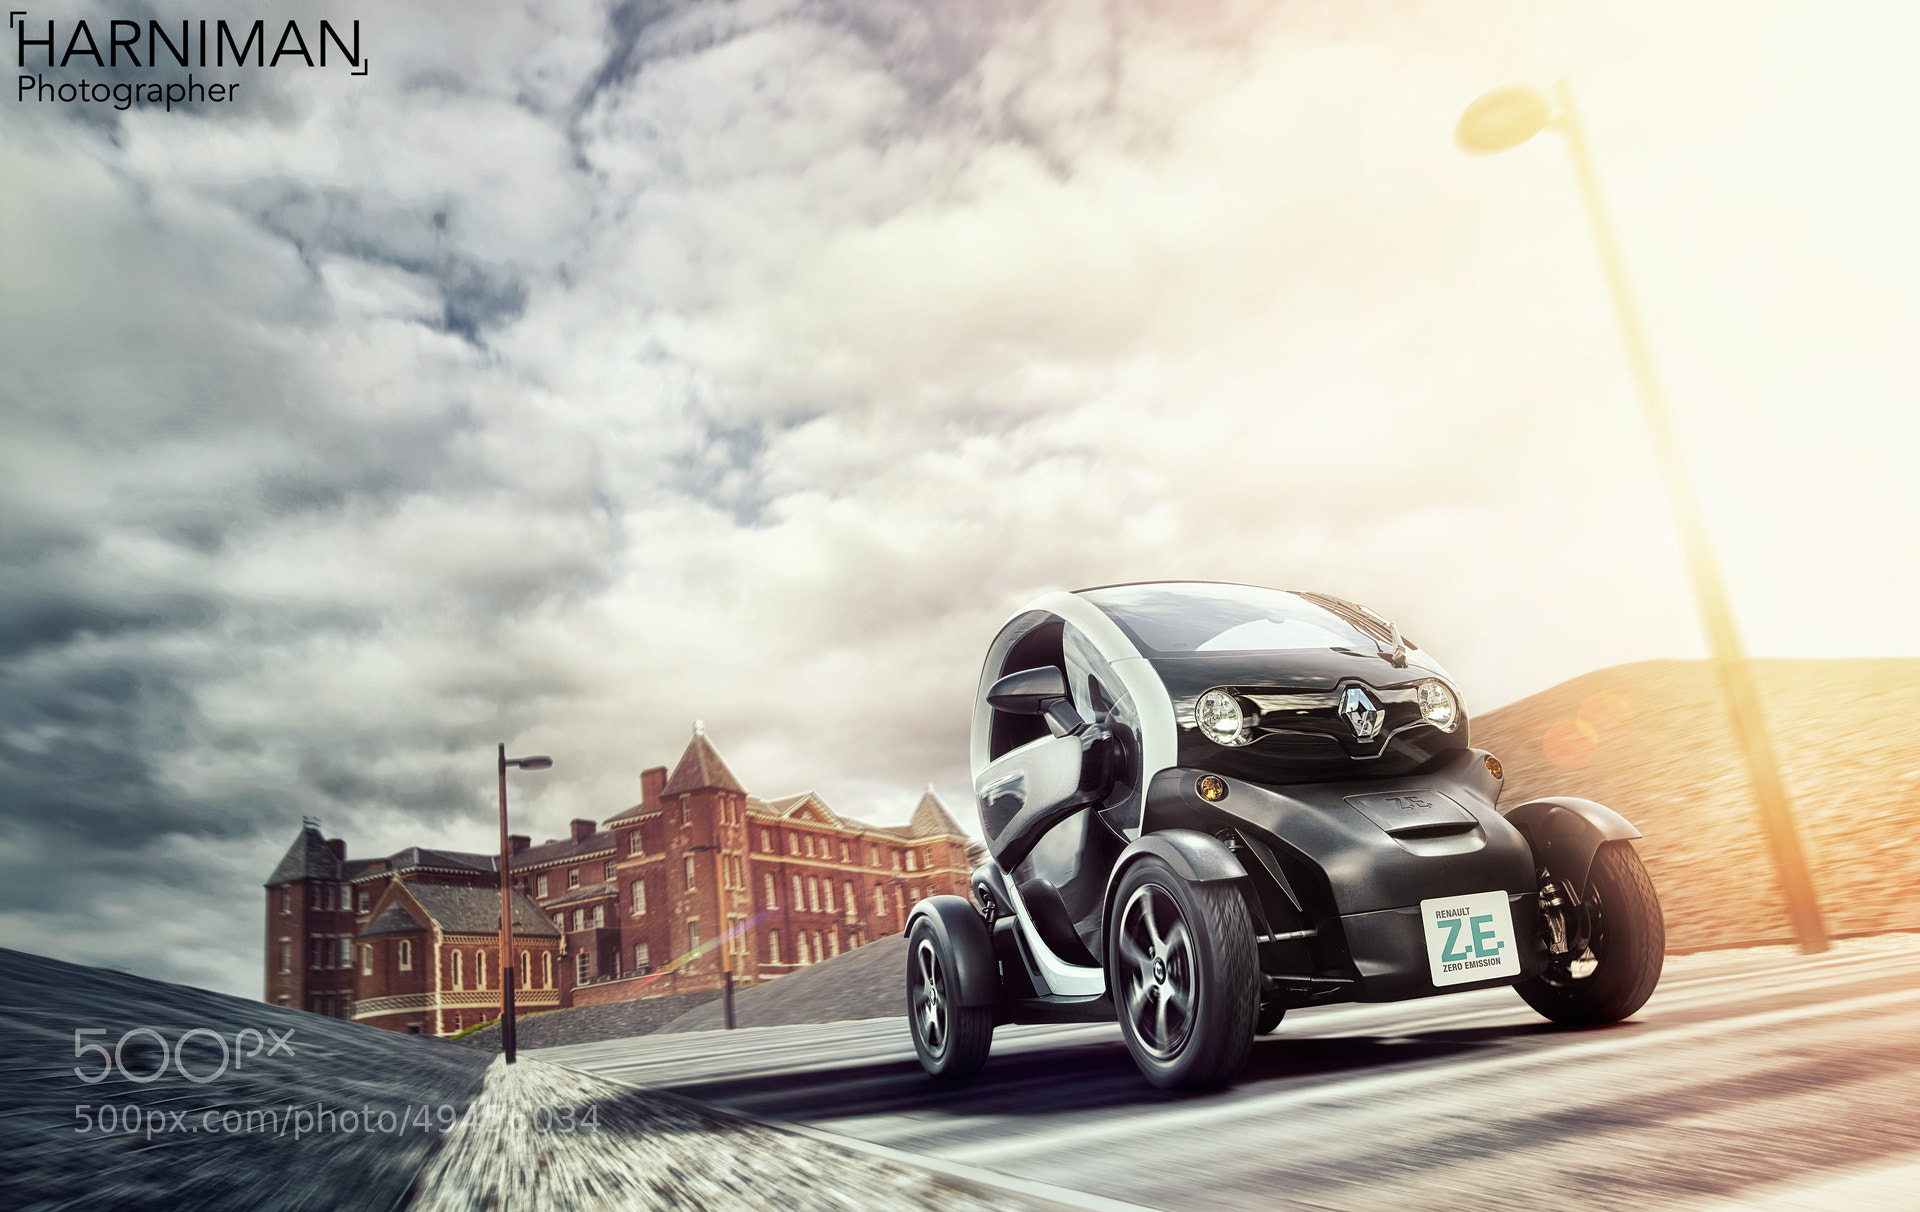 Photograph Renault Twizy in Motion by Nigel Harniman on 500px